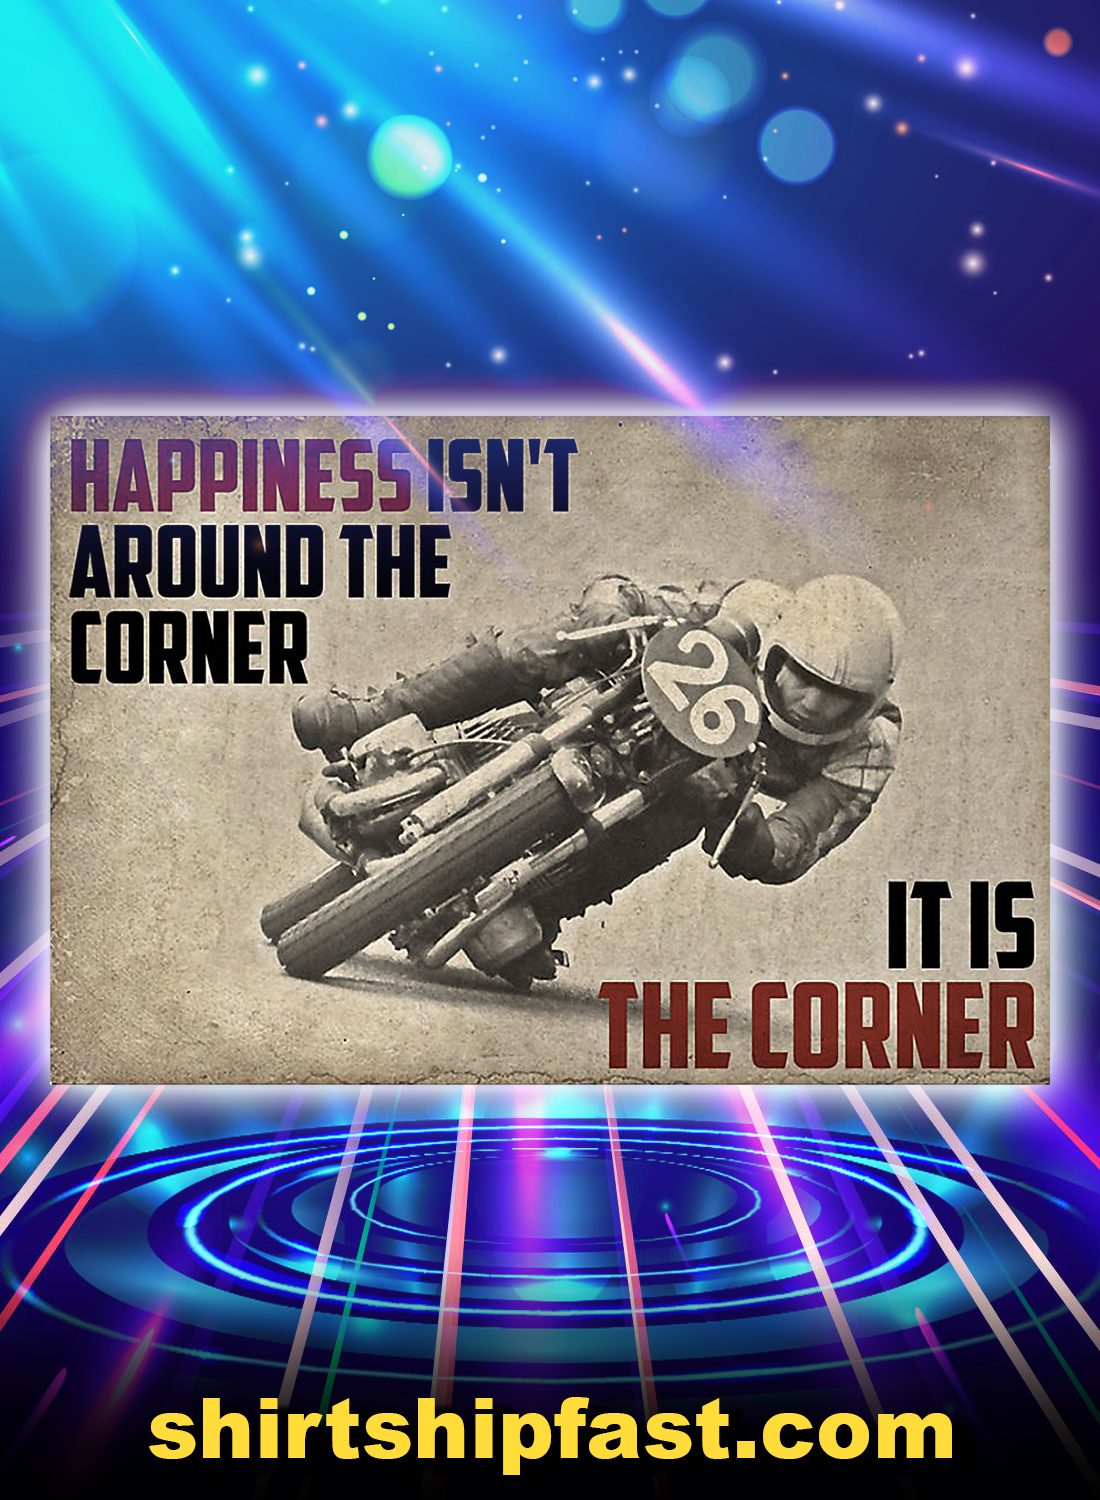 Poster Motorcycle happiness isn't around the corner it is the corner - A4